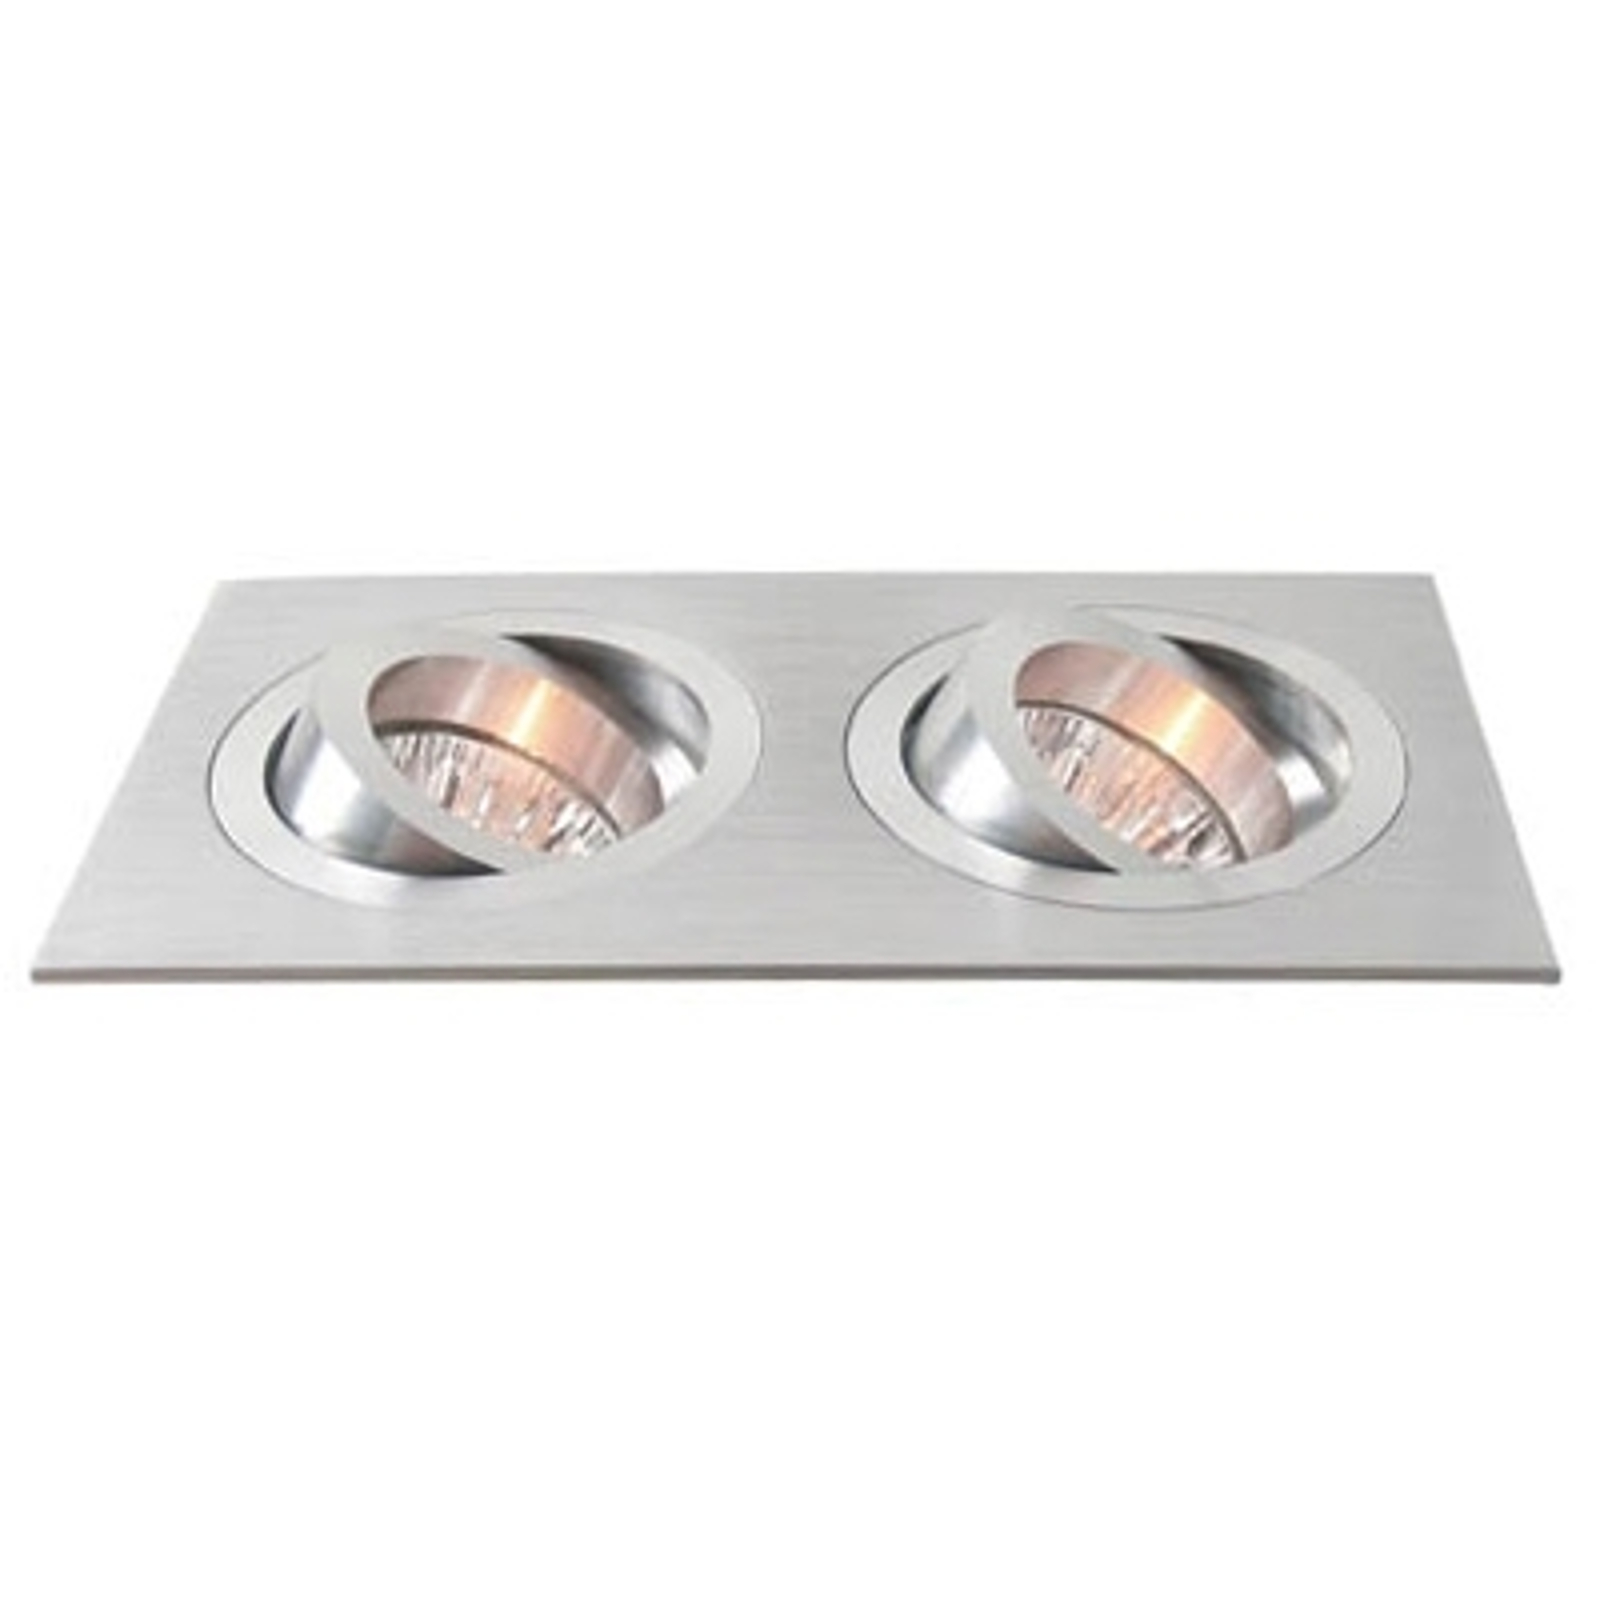 2-bulb pivotable aluminium recessed light_2501077_1